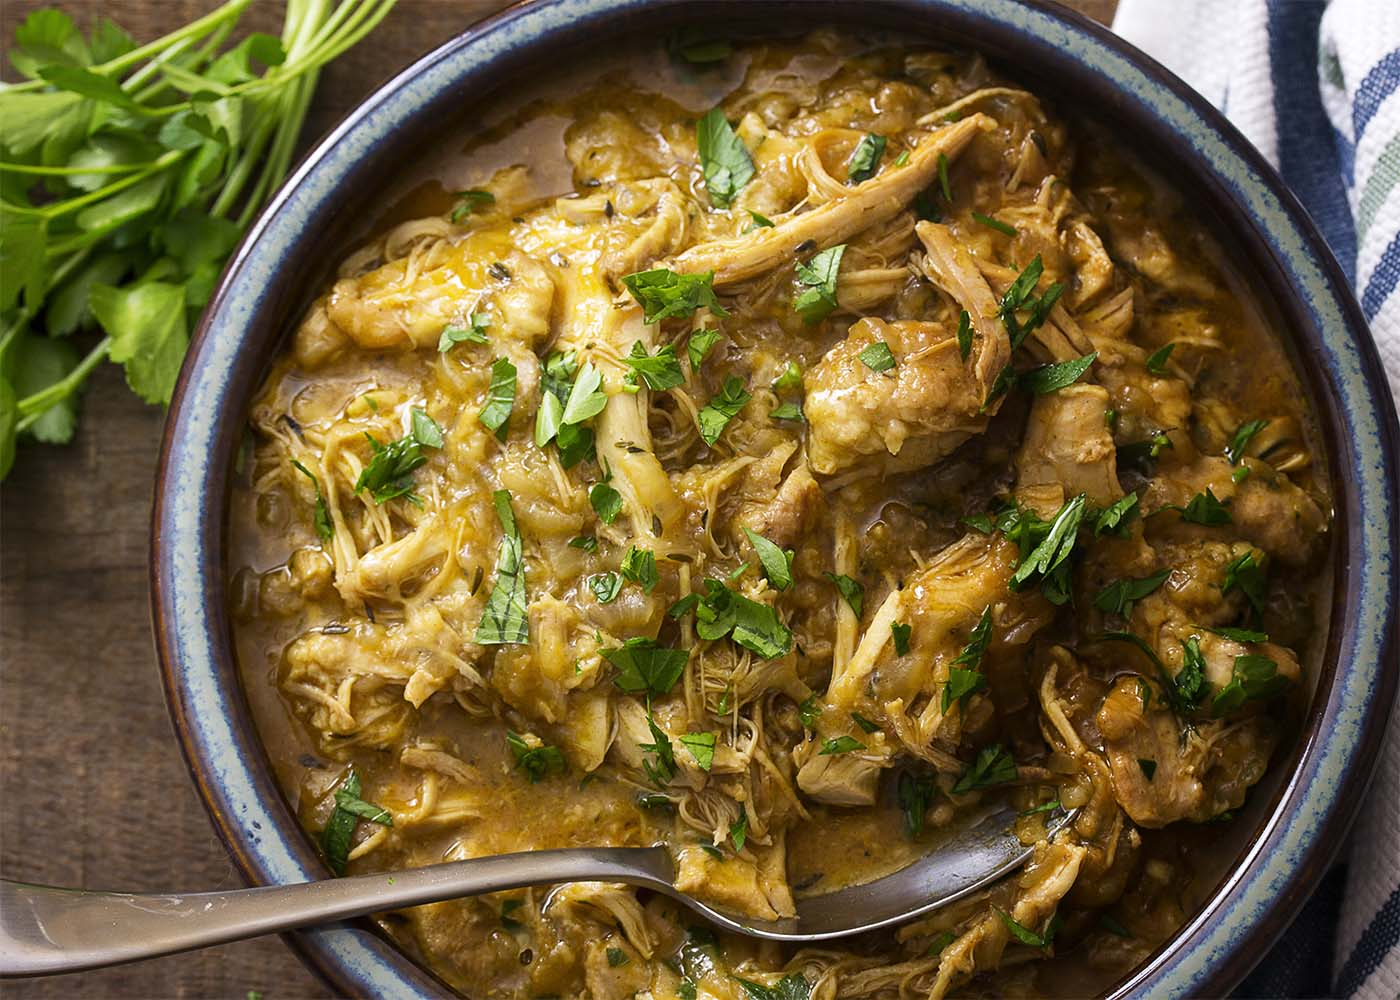 Turn on the slow cooker and come home to this recipe of chicken thighs cooked into a comforting stew with a rich, onion and cheese gravy. Great served over roasted winter squash or mashed potatoes! And wonderful for sandwiches the next day. | justalittlebitofbacon.com